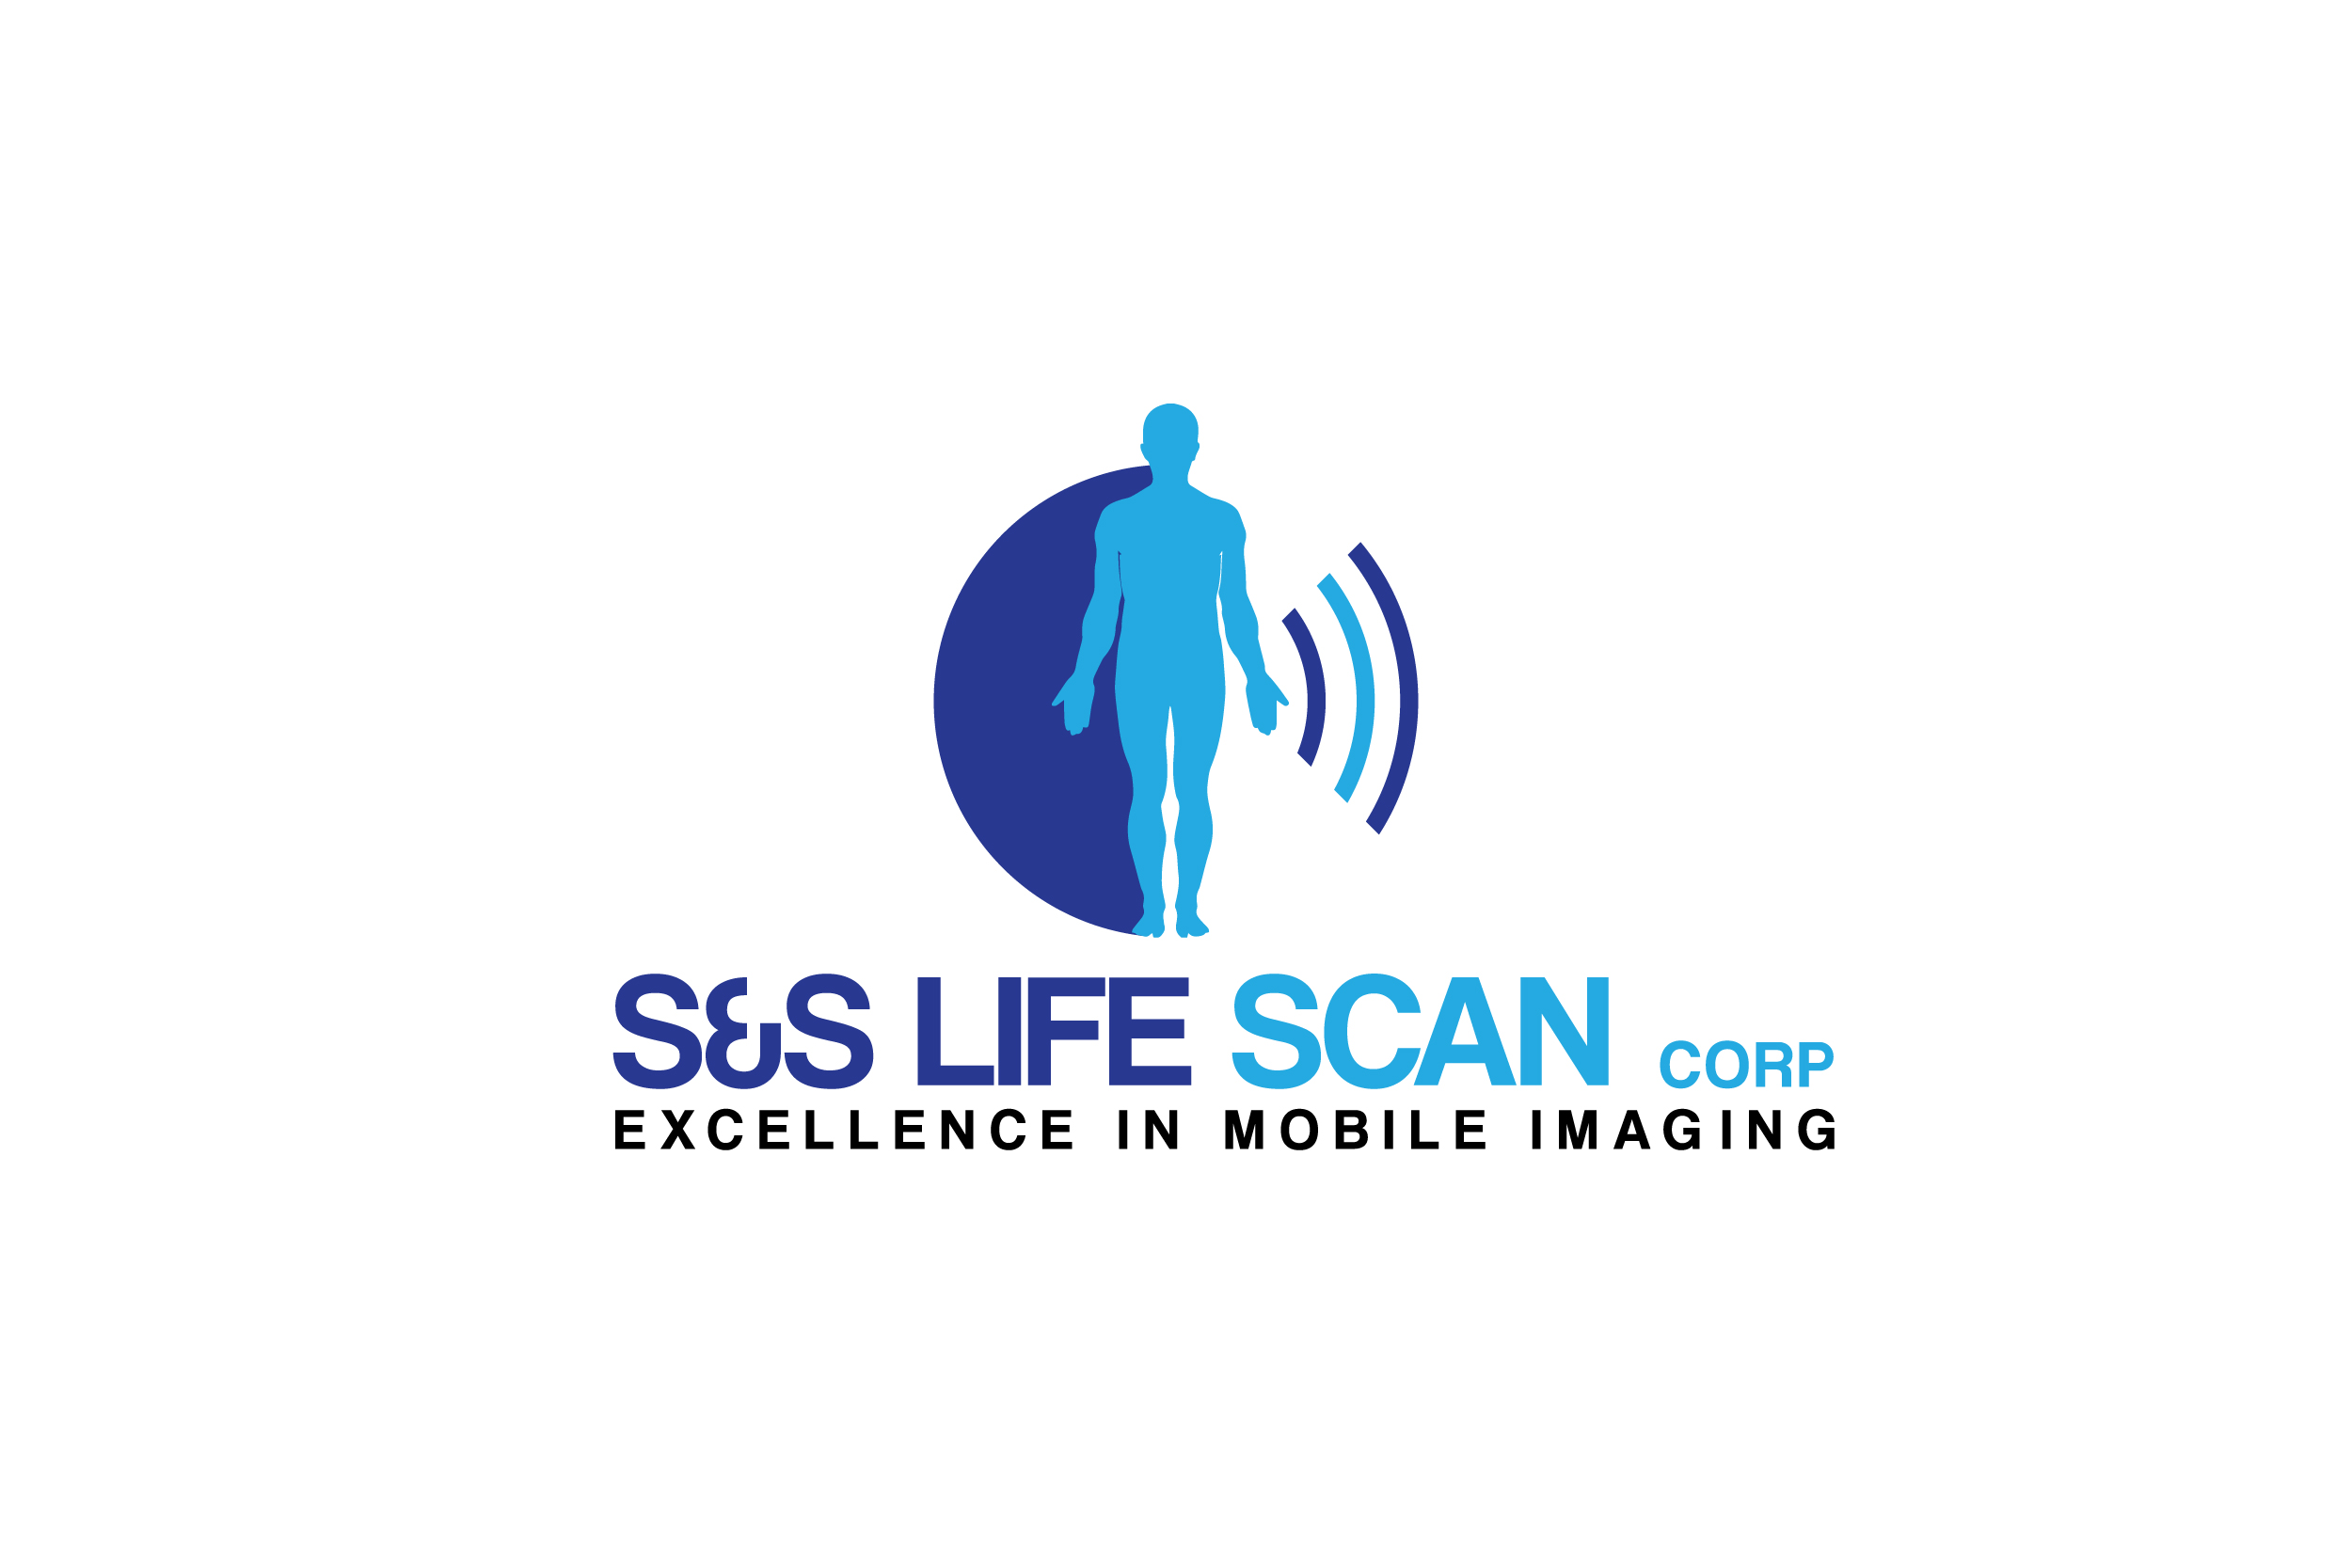 S&S LIFE SCAN CORP